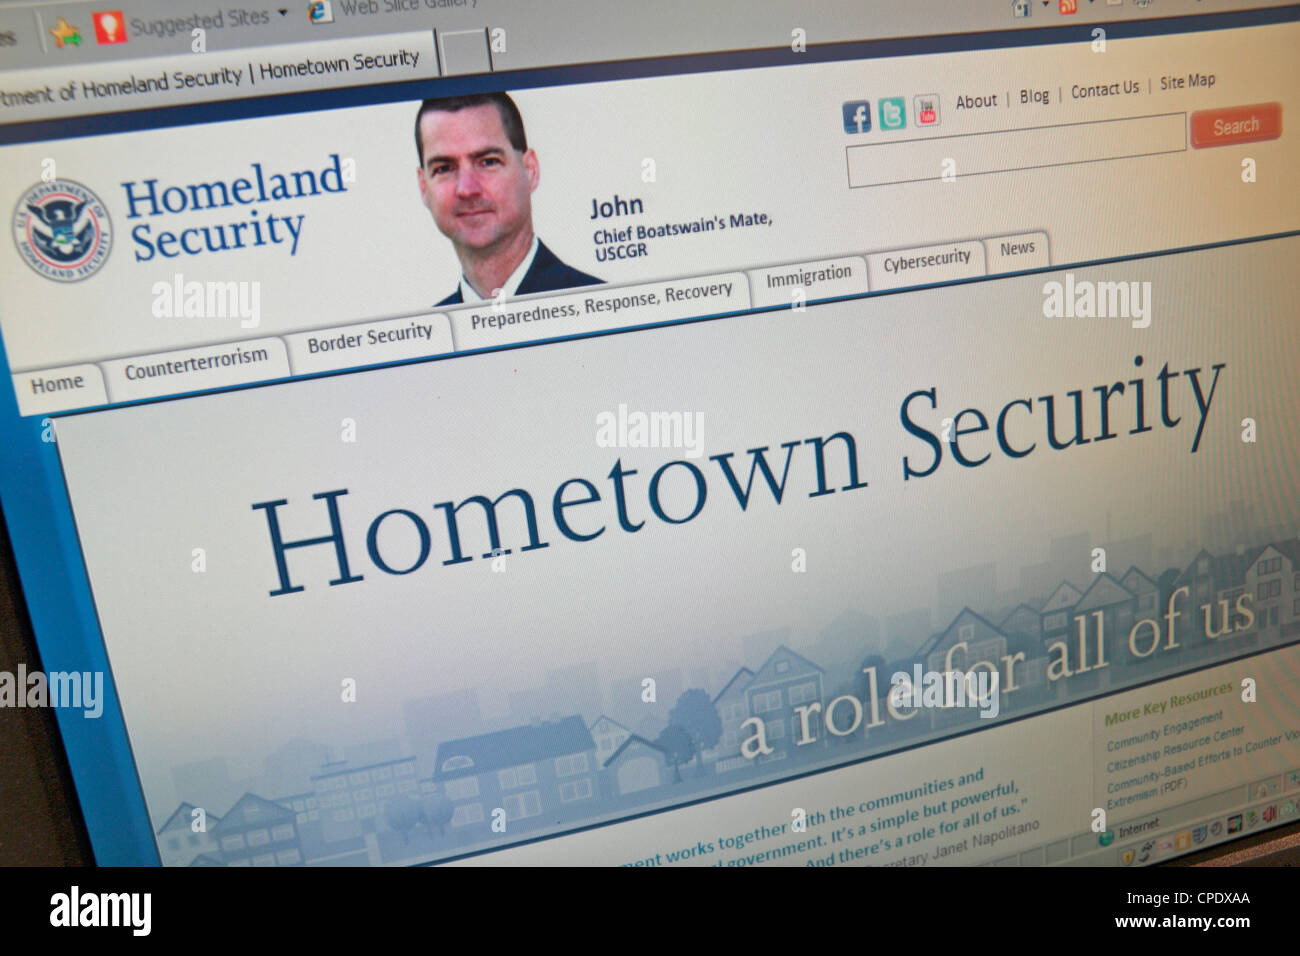 Screen shot of the (Department of) Homeland Security website, part of the United States federal government. - Stock Image